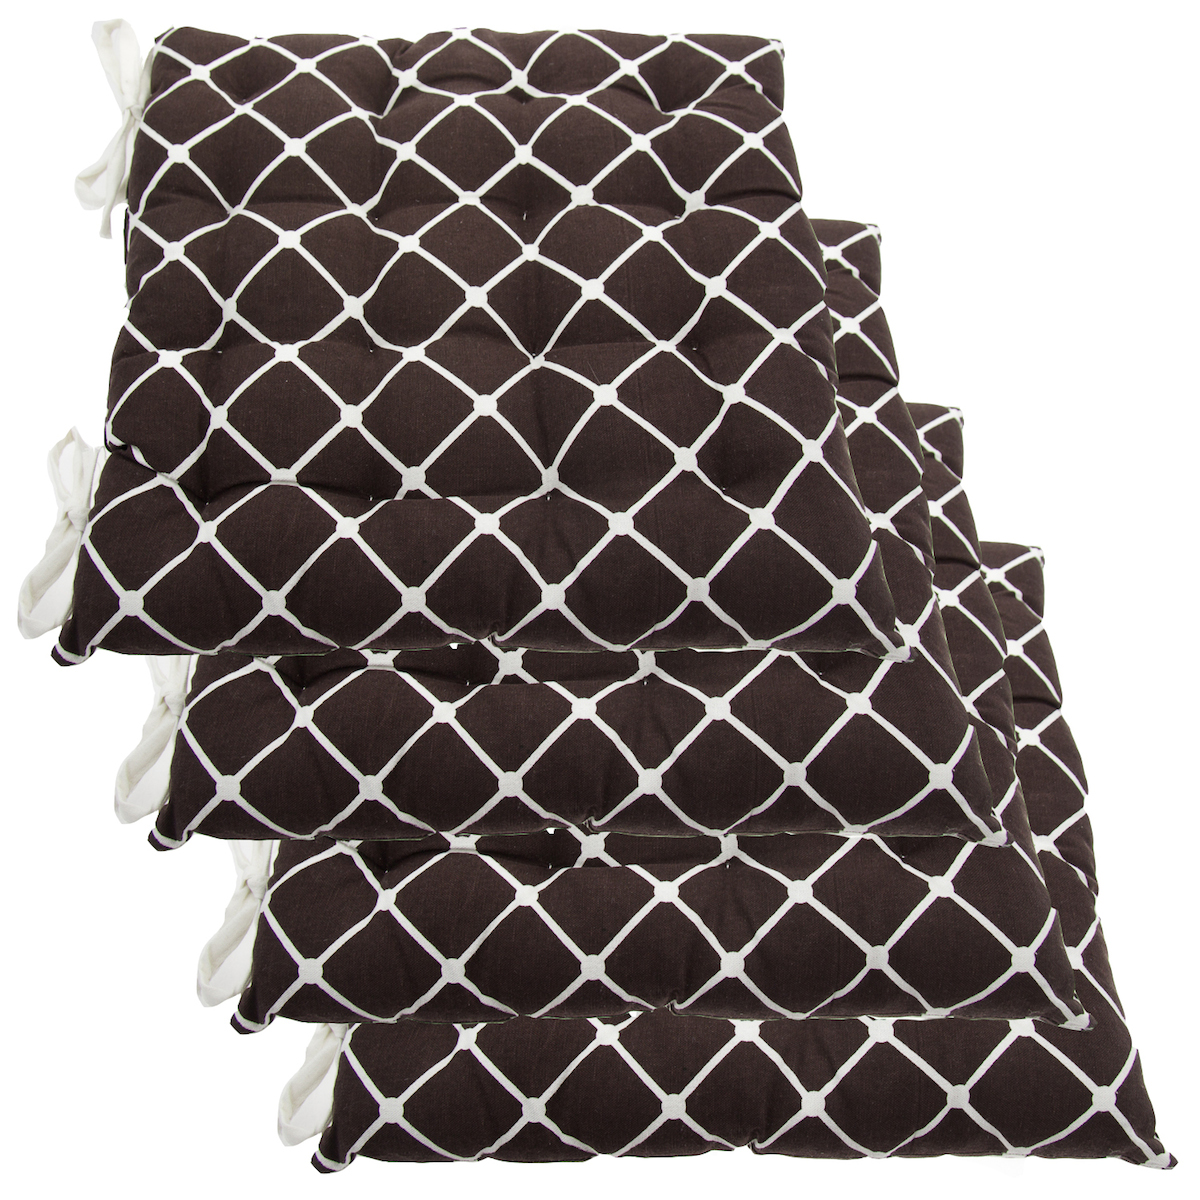 Set Of 4 Cotton Indoor Reversible Chair Pads amp Ties  : u2846 from www.ebay.com size 1200 x 1200 jpeg 1014kB